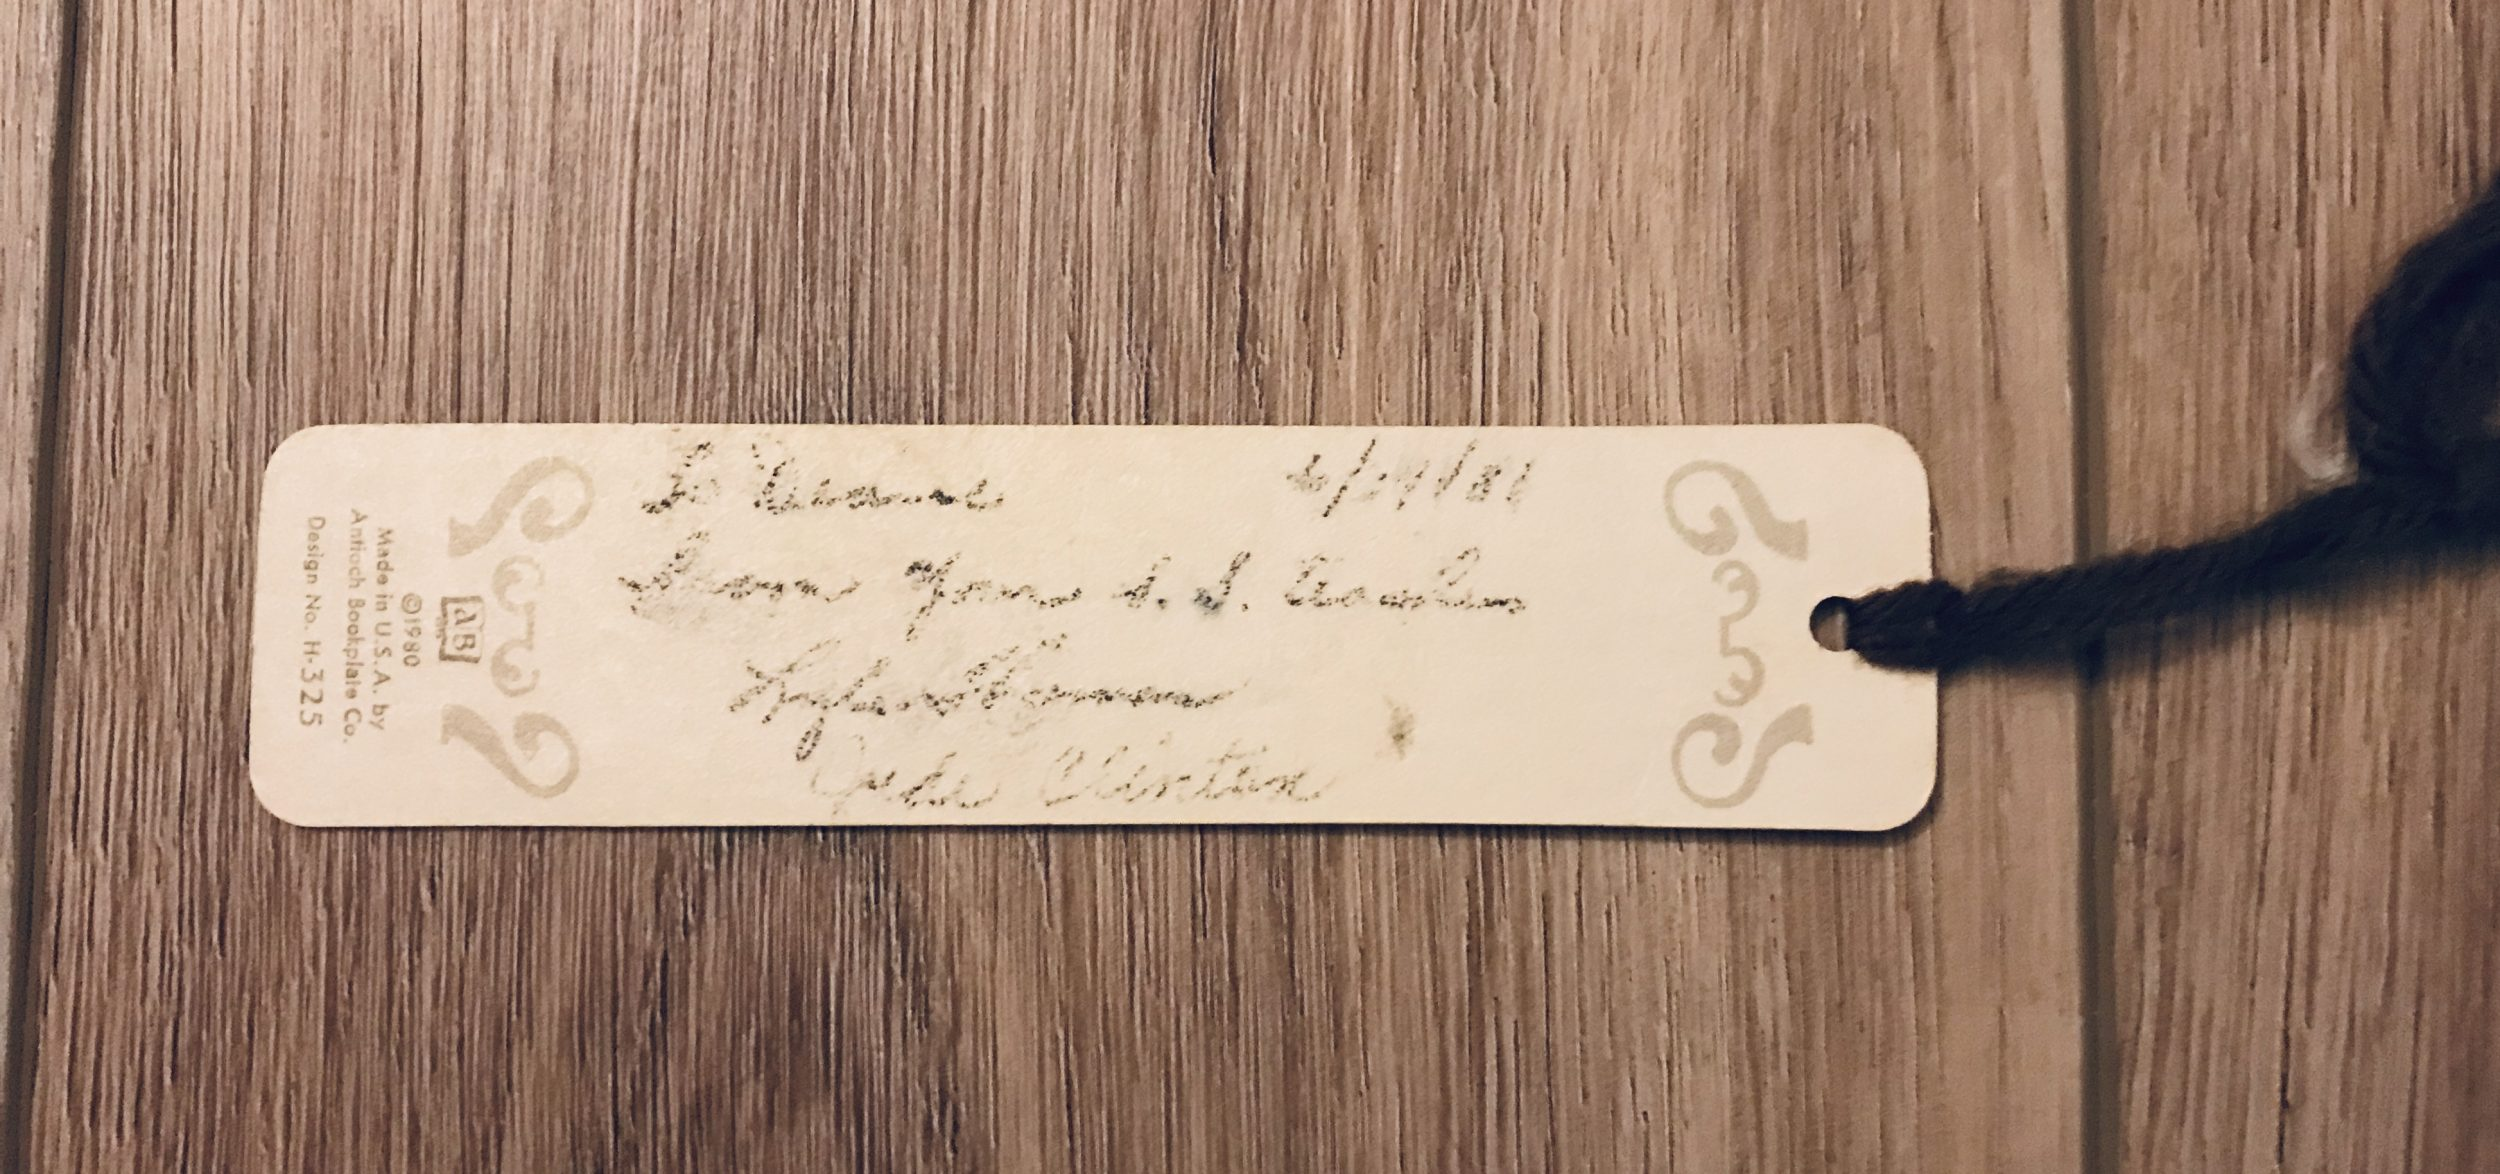 back of bookmark showing a personalized message from 1981